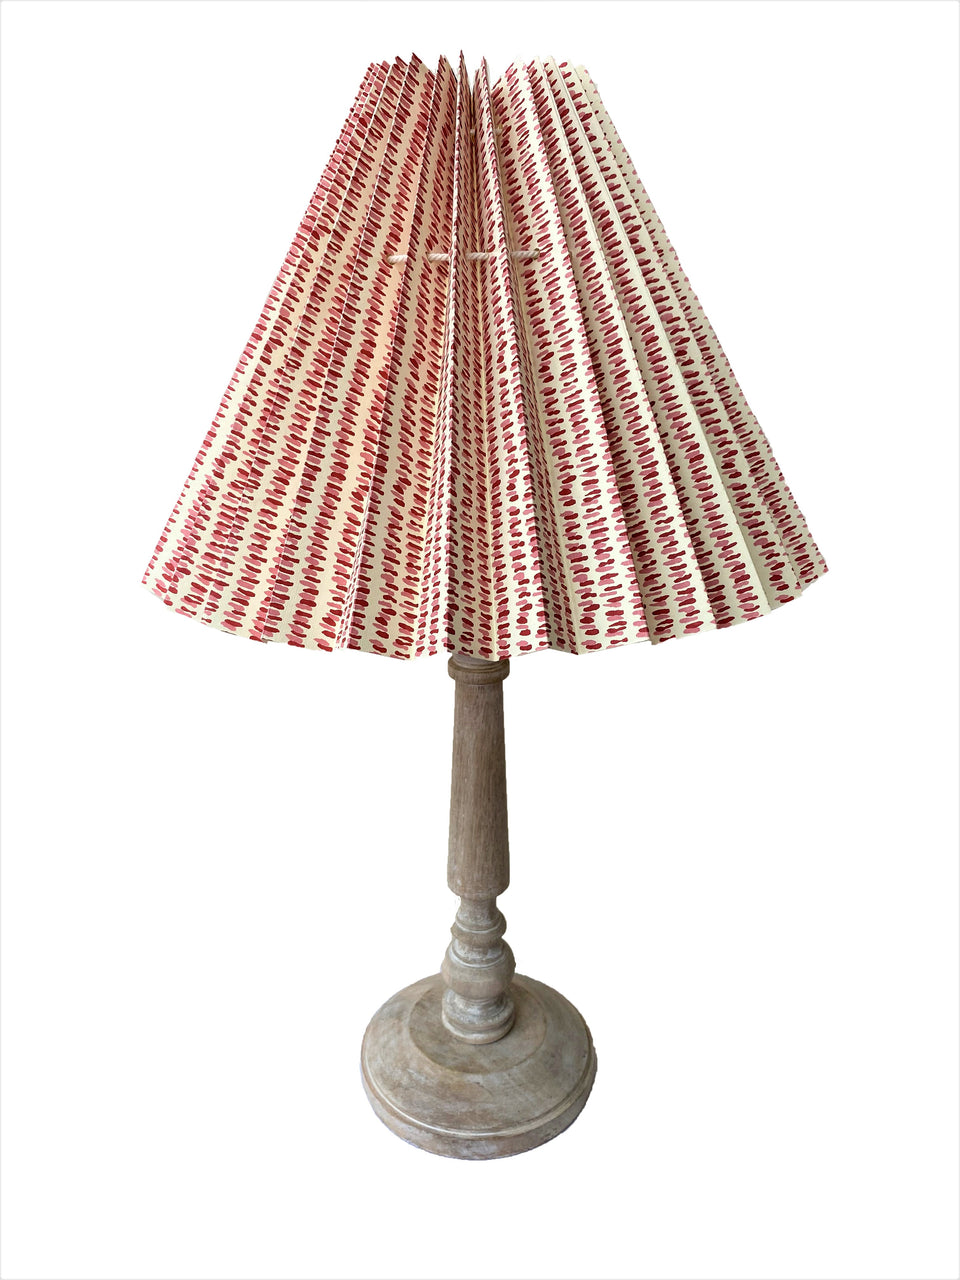 HANDMADE PAPER LAMPSHADE IN PINK AND RED DASH LINES